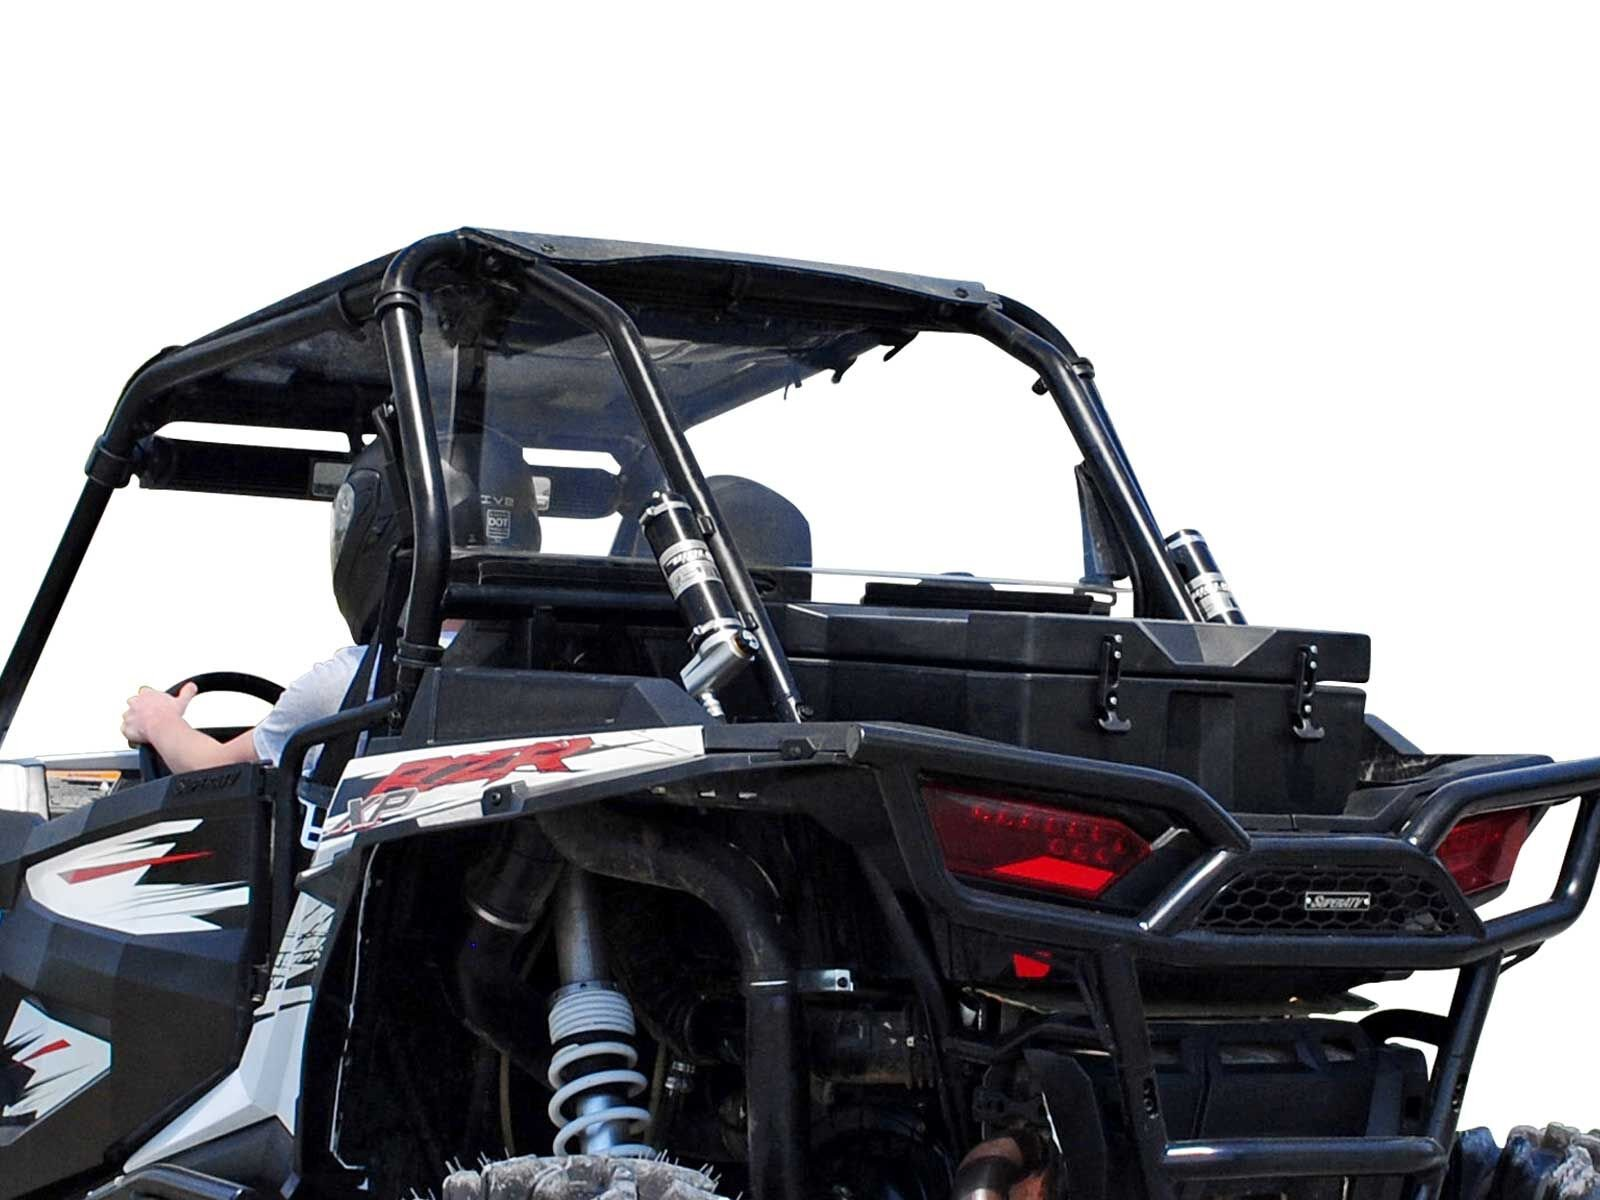 SuperATV Heavy Duty Clear Polycarbonate Rear Windshield for Polaris RZR XP 1000 / XP 4 1000 (2014-2018) - Easy to Install!